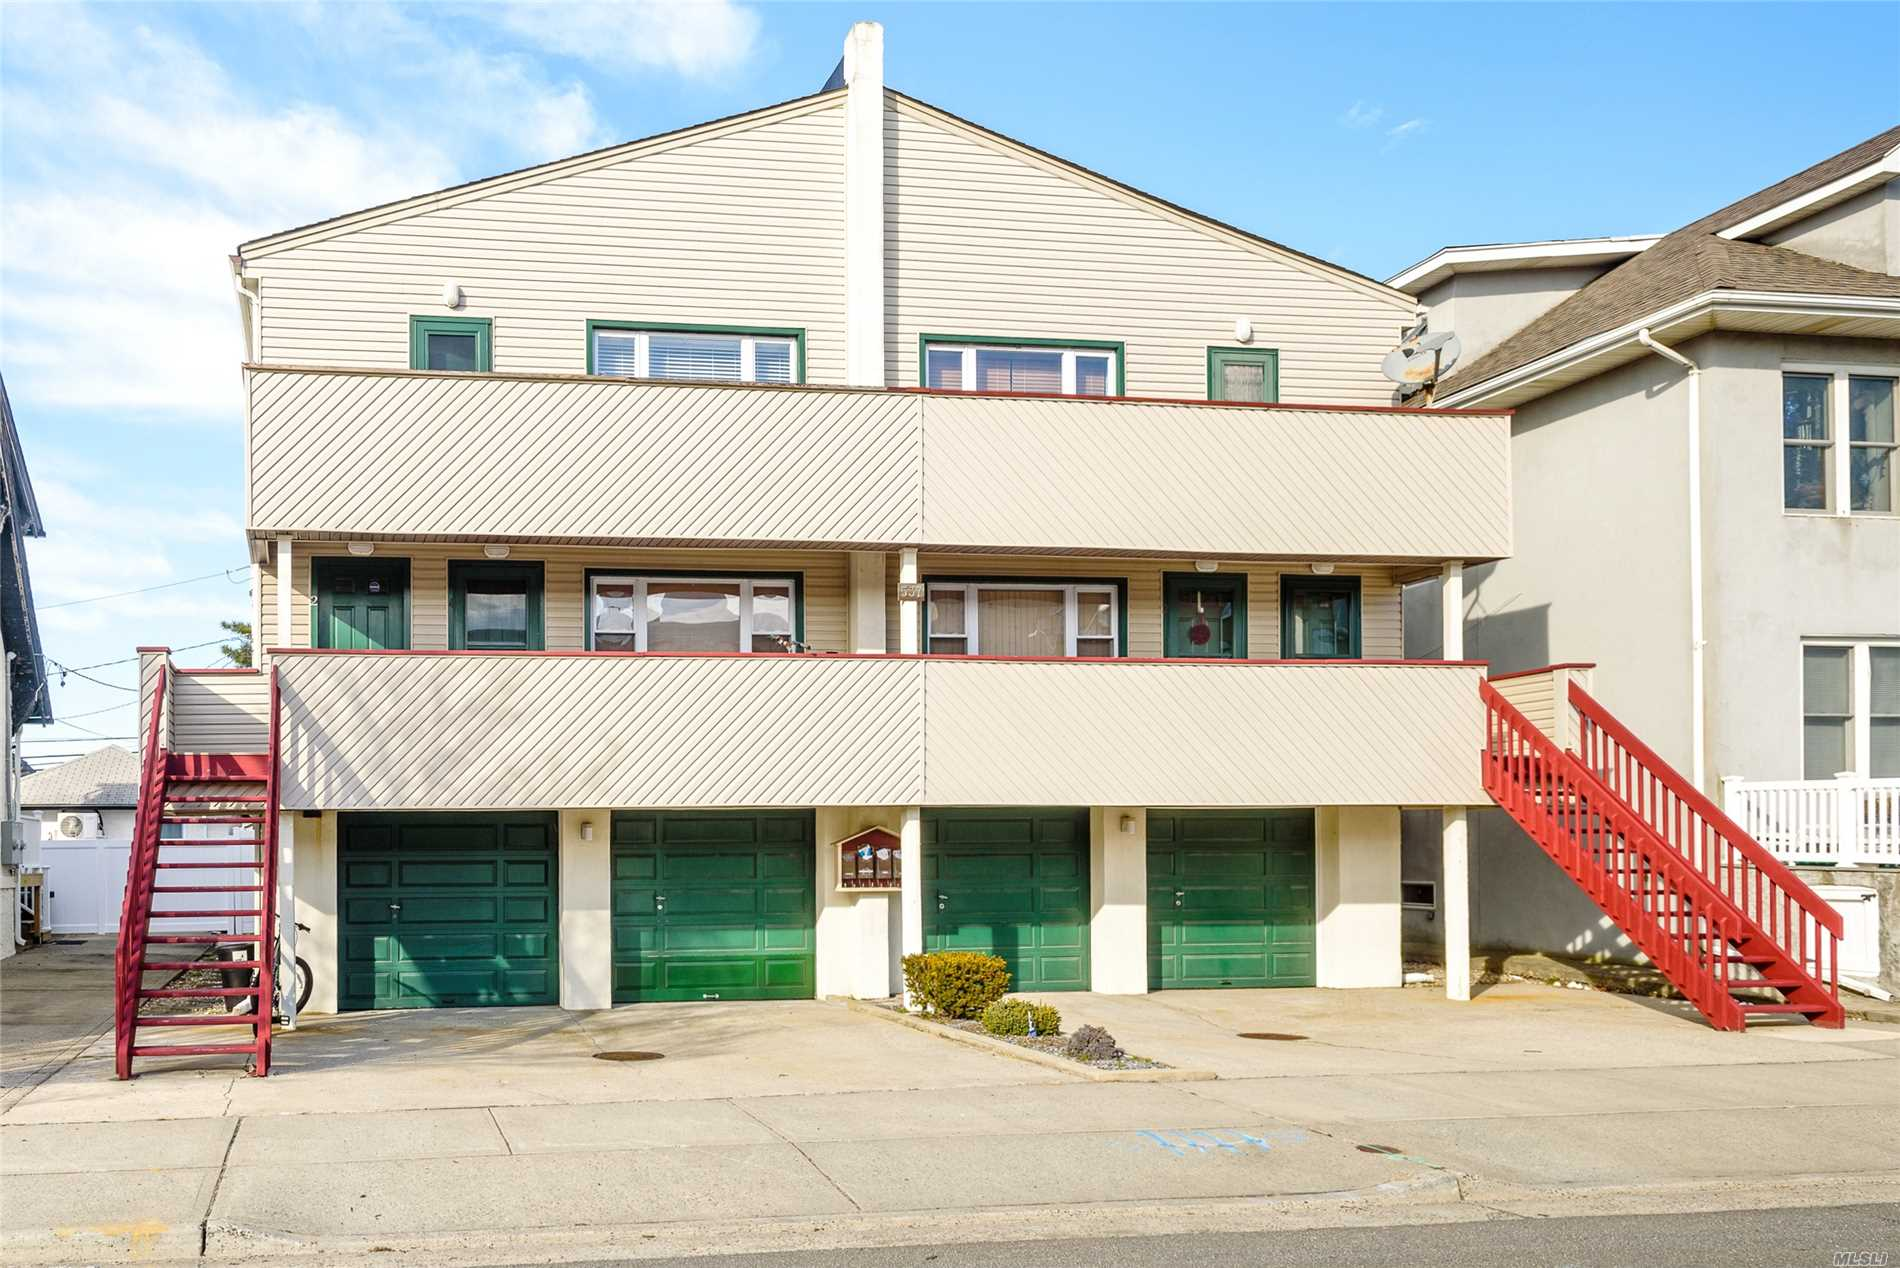 Property for sale at 537 E Broadway # 2, Long Beach NY 11561, Long Beach,  New York 11561